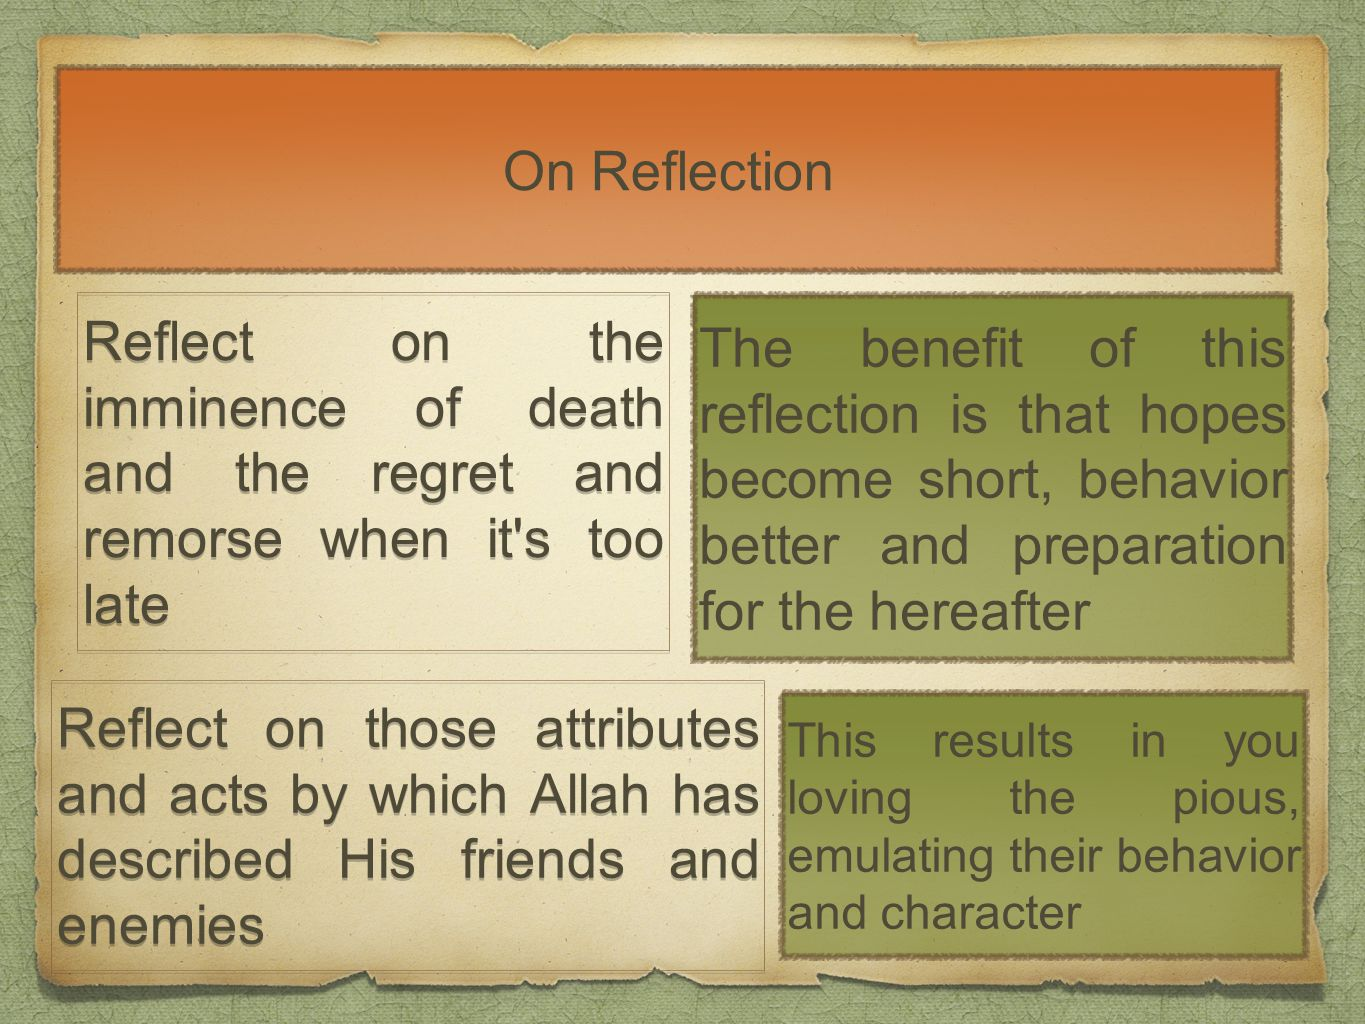 On Reflection Reflect on the imminence of death and the regret and remorse when it s too late The benefit of this reflection is that hopes become short, behavior better and preparation for the hereafter This results in you loving the pious, emulating their behavior and character Reflect on those attributes and acts by which Allah has described His friends and enemies